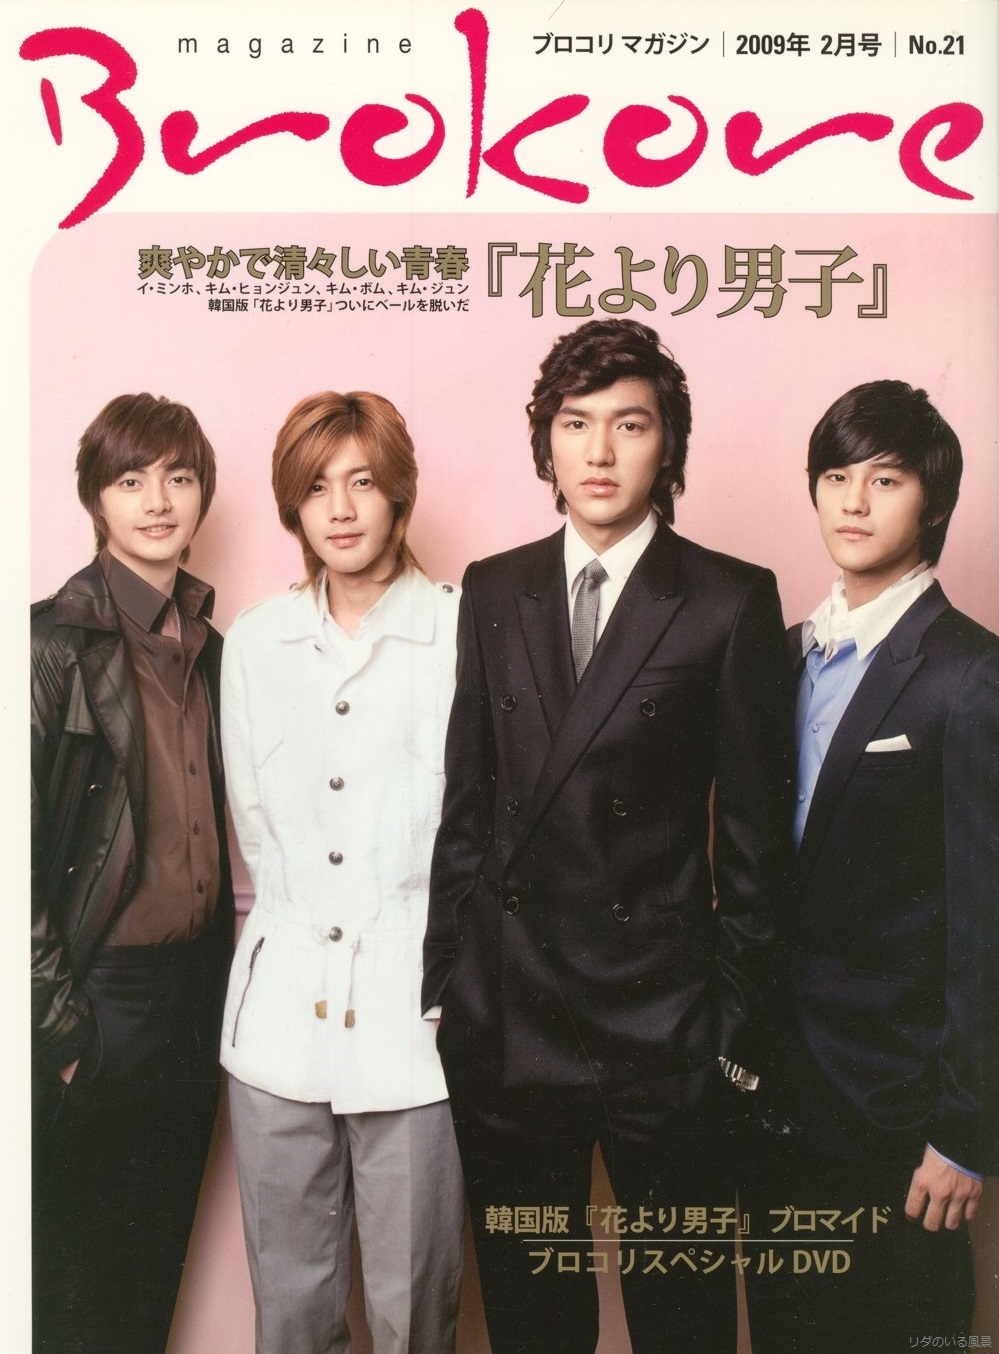 This Is The February Issue - Ziff Senior Appearance No.21 2009 Years Brokore Magazine